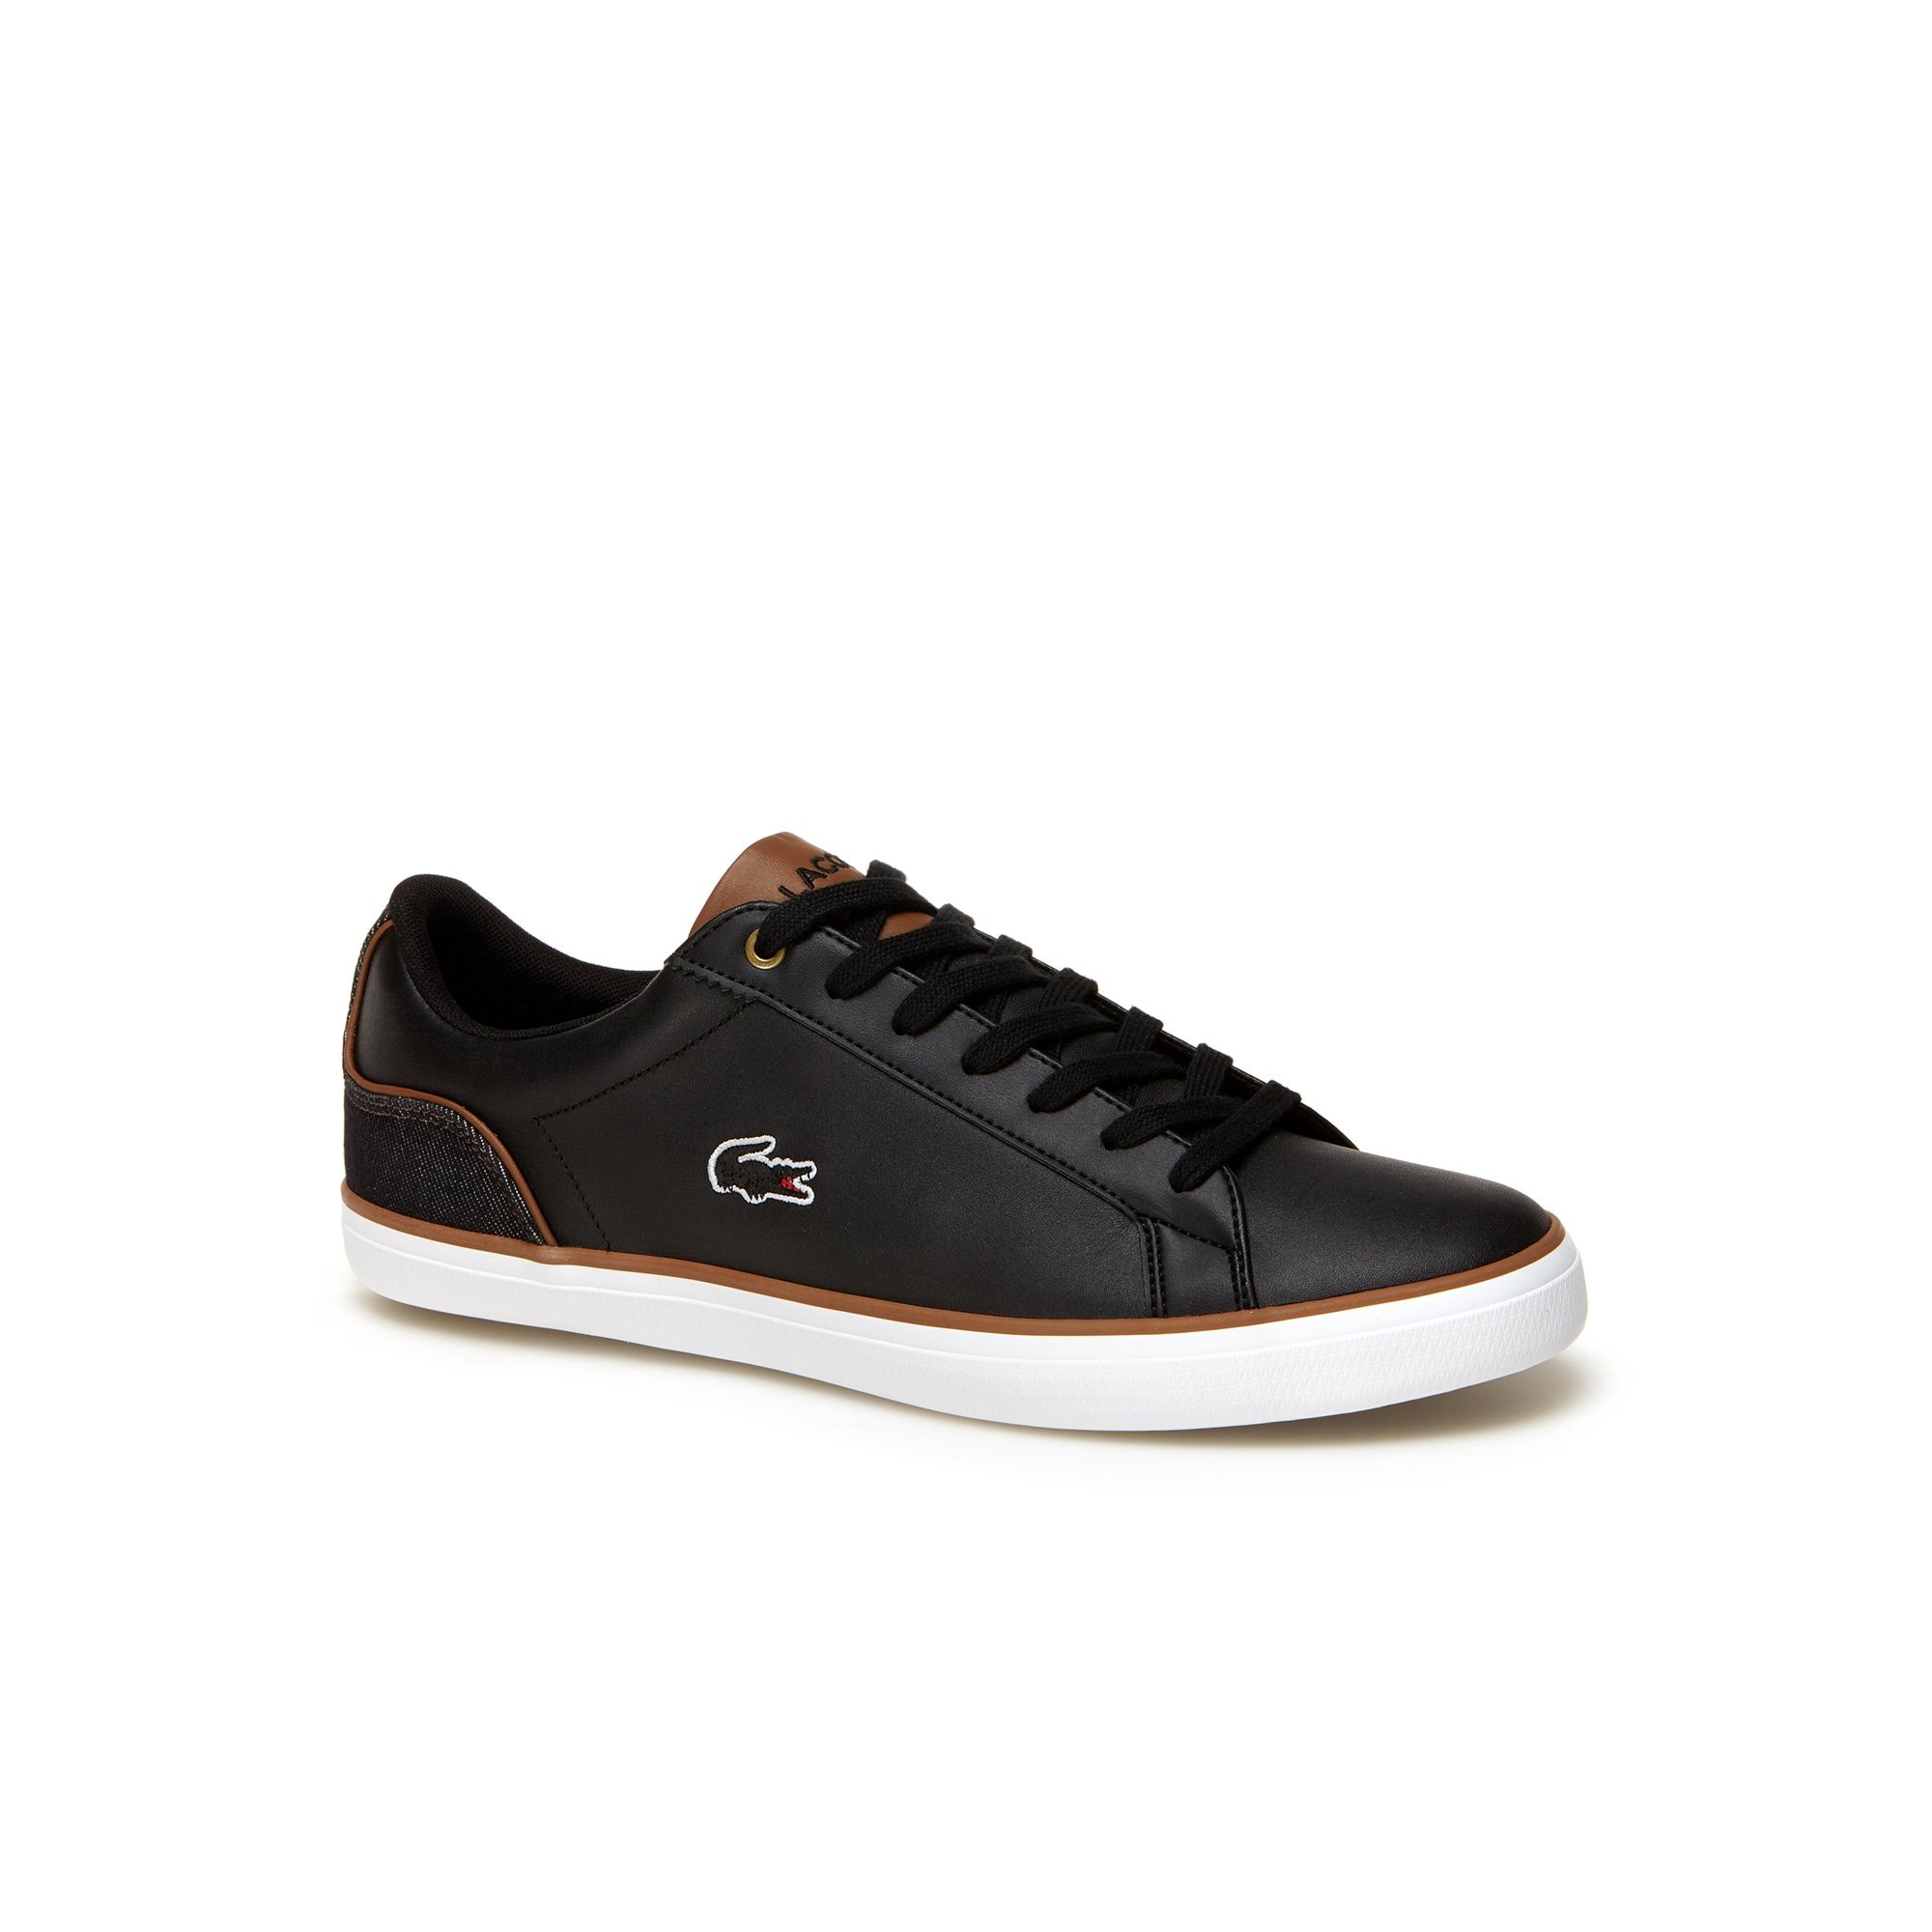 Men's Lerond Leather and Denim Trainers